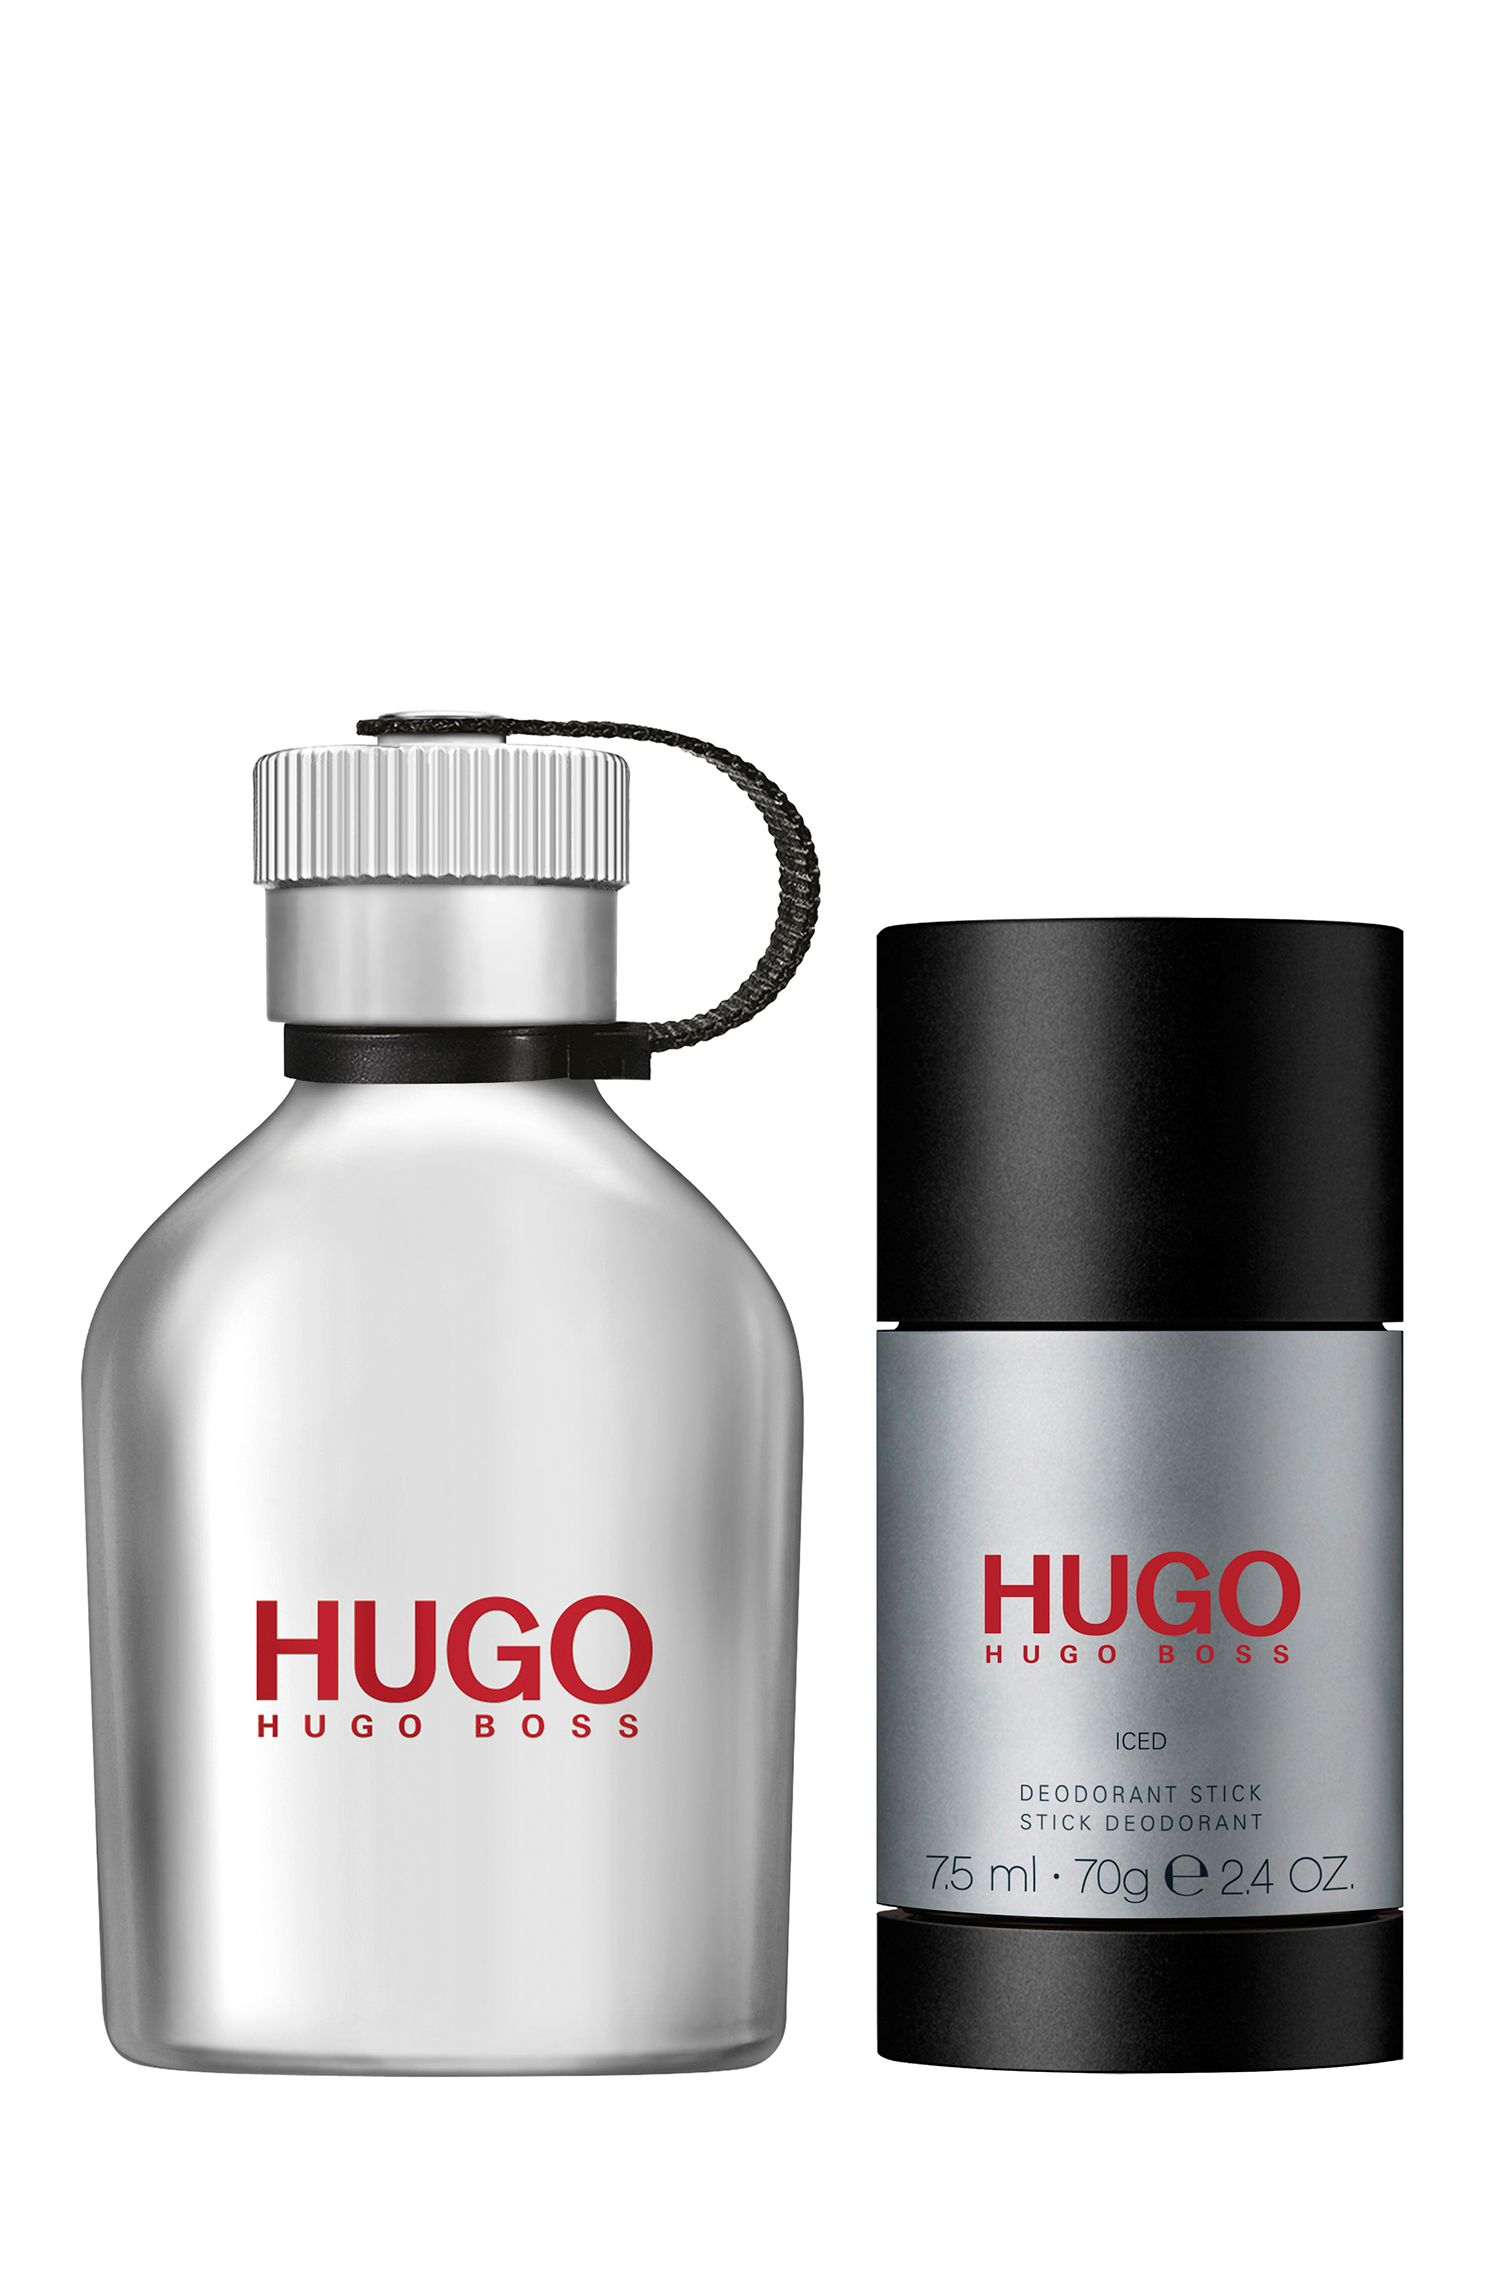 HUGO Iced fragrance gift set